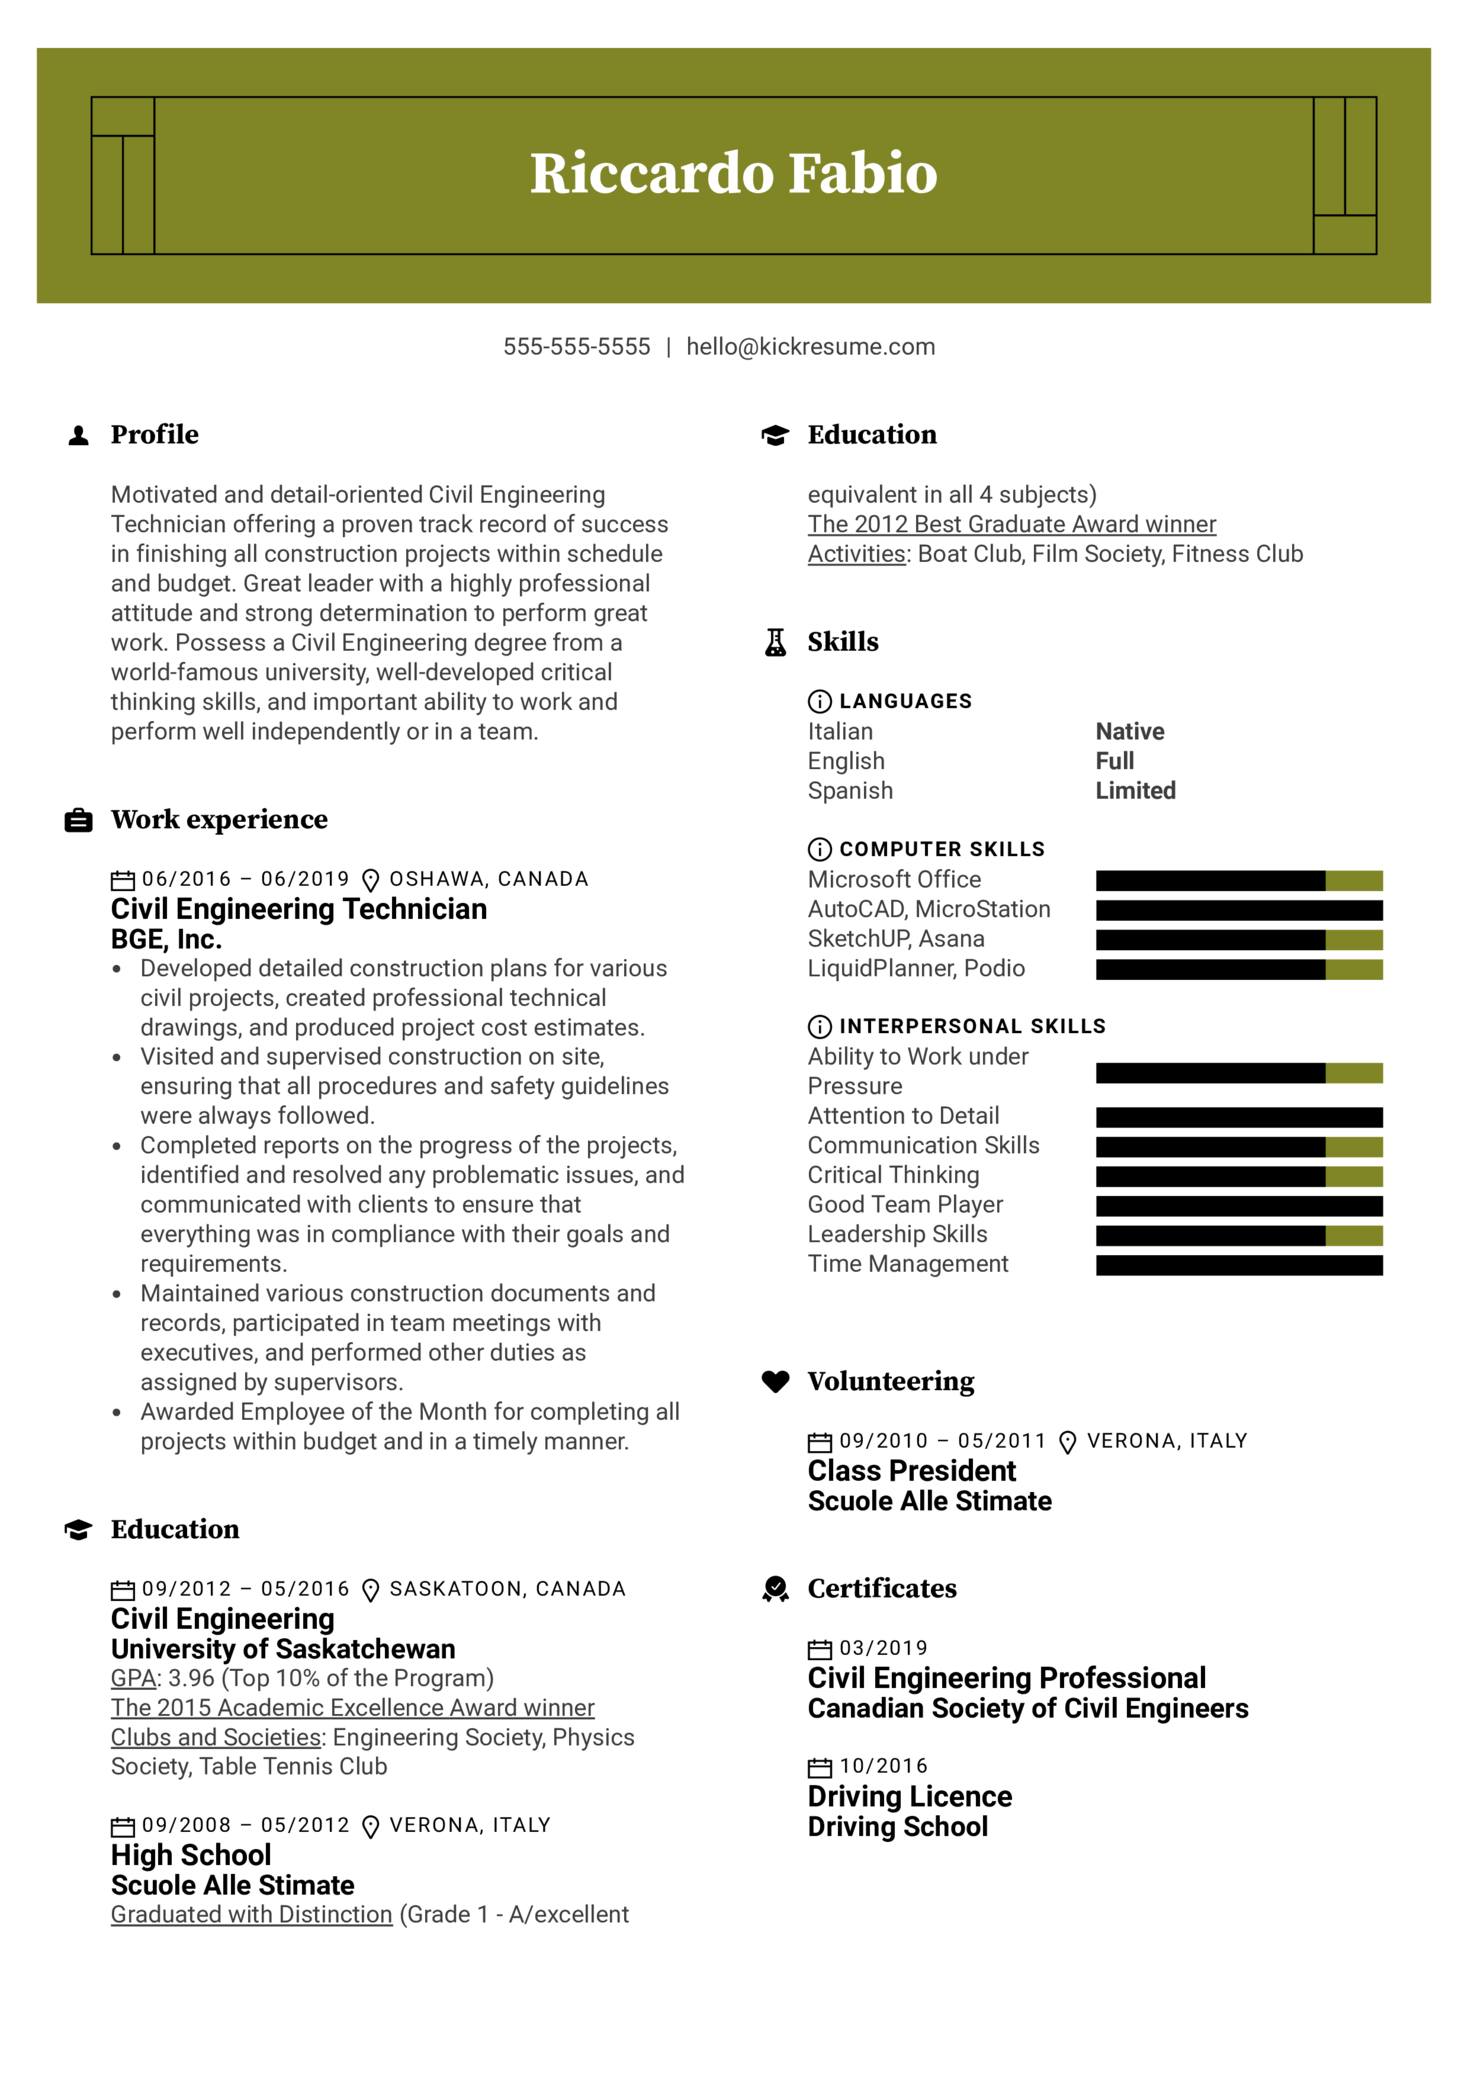 resume examples by real people  civil engineering technician resume sample